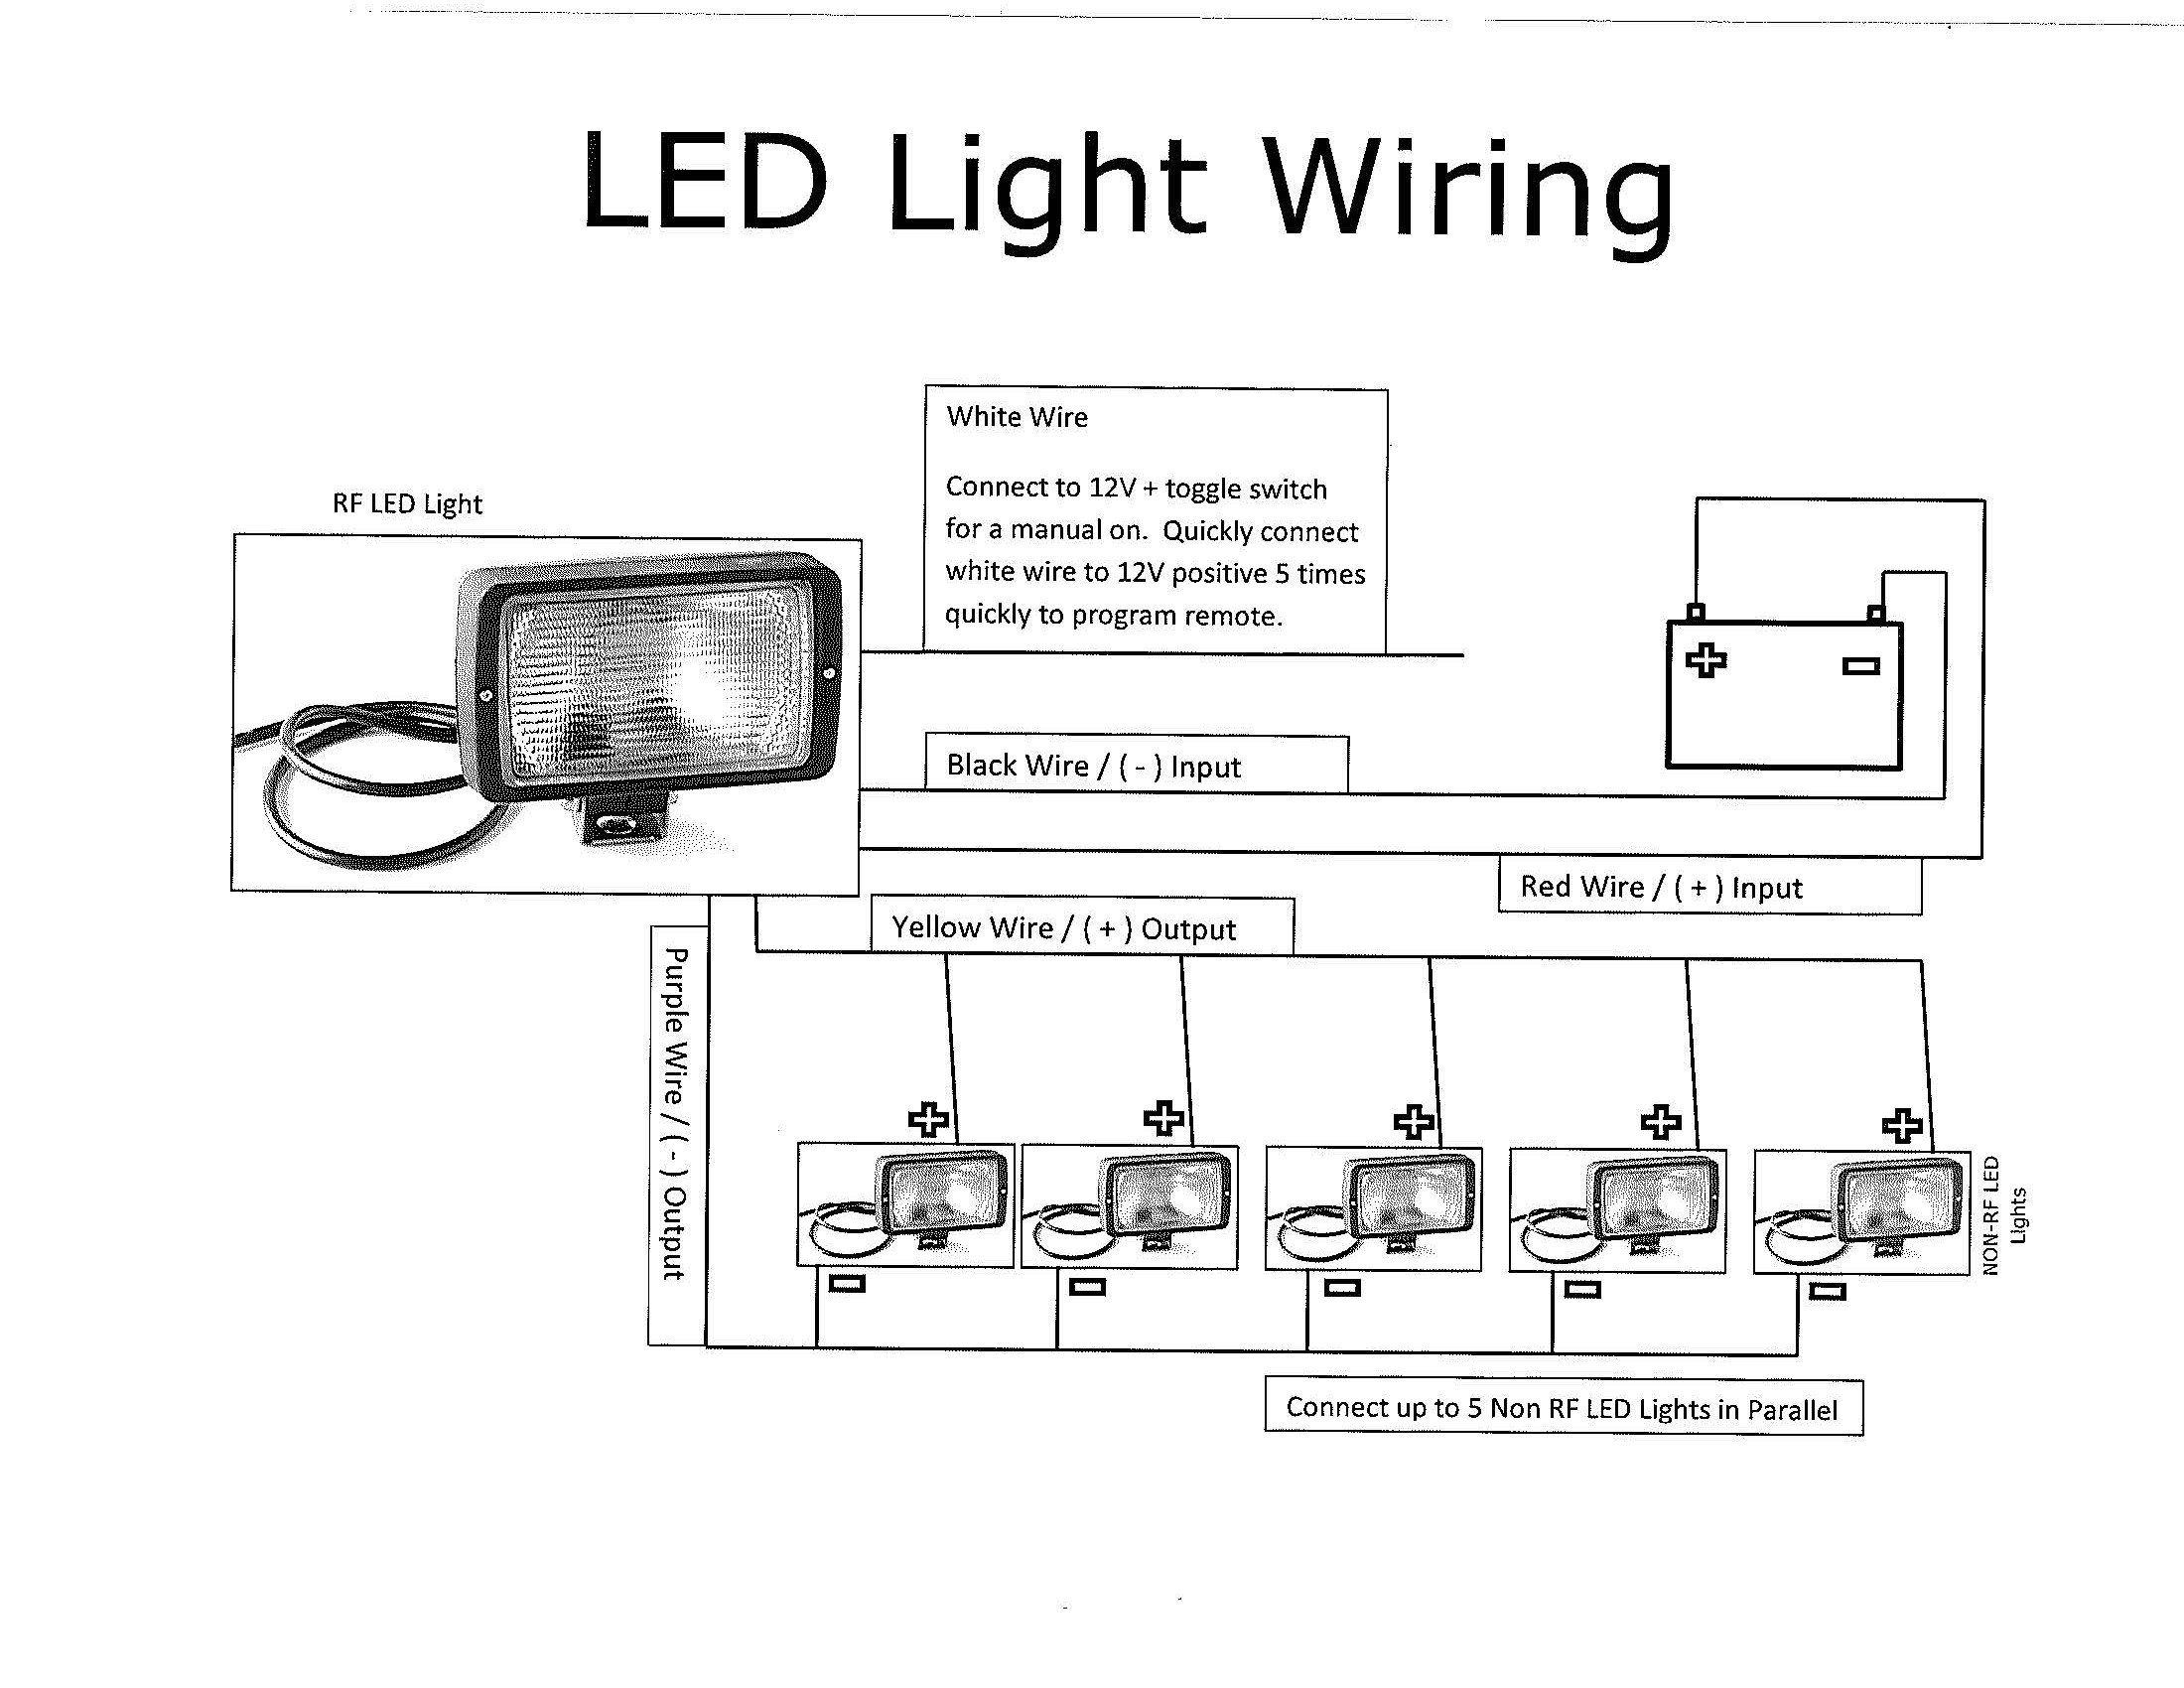 led wire diagram led wiring diagram 12v led image wiring diagram 12v led work light wiring diagram wire diagram